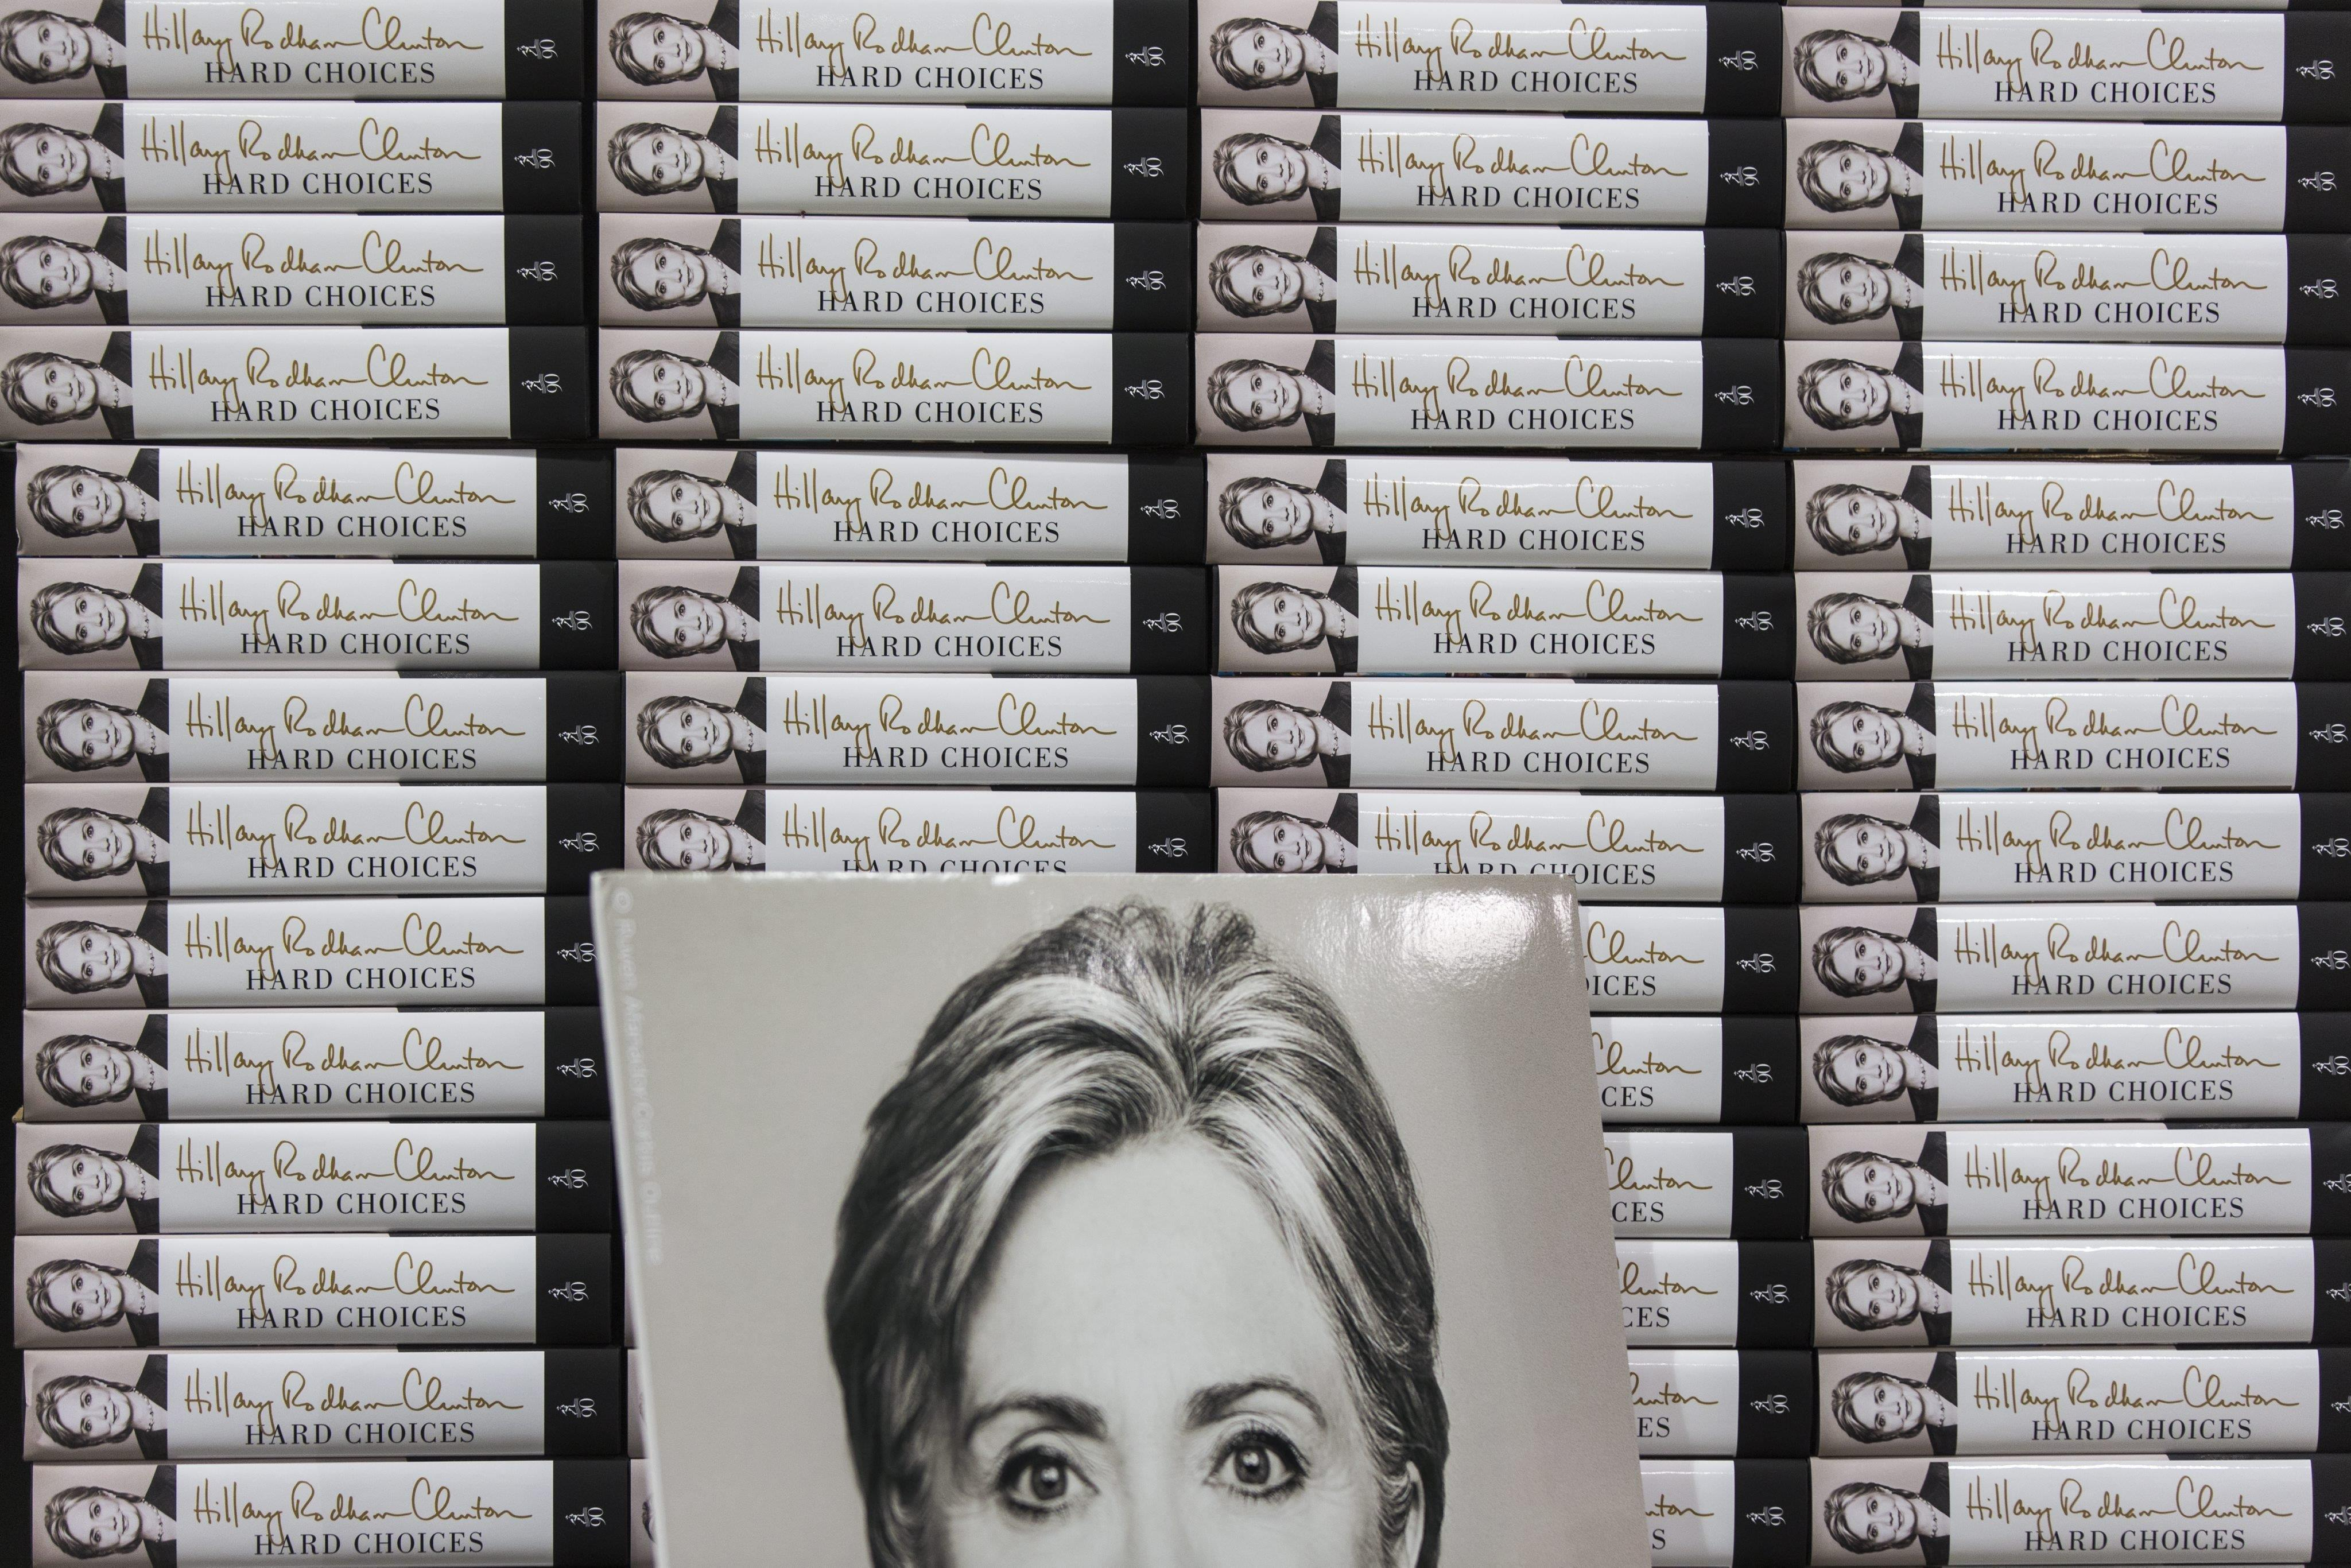 Image: Clinton Signs Copies of Hard Choices in Virginia